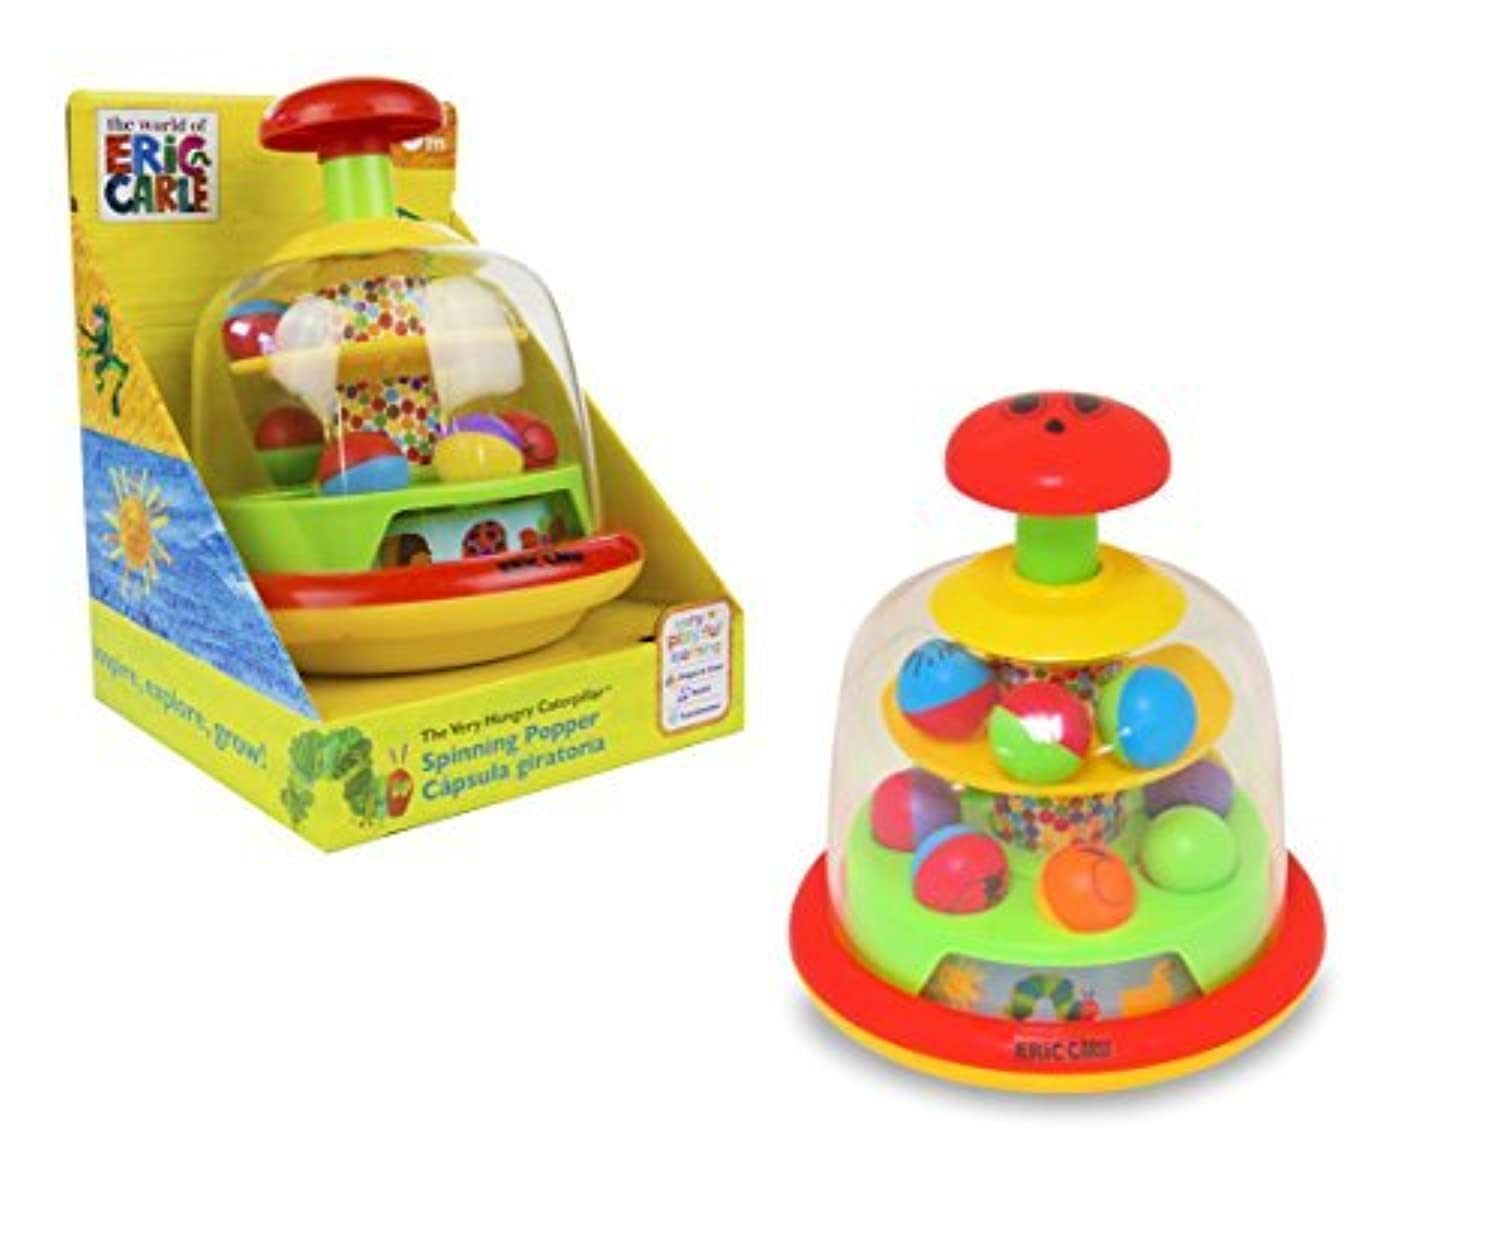 World of Eric Carle, The Very Hungry Caterpillar Push and Spin Popper Toy by Kids Preferred by Kids Preferred [並行輸入品]